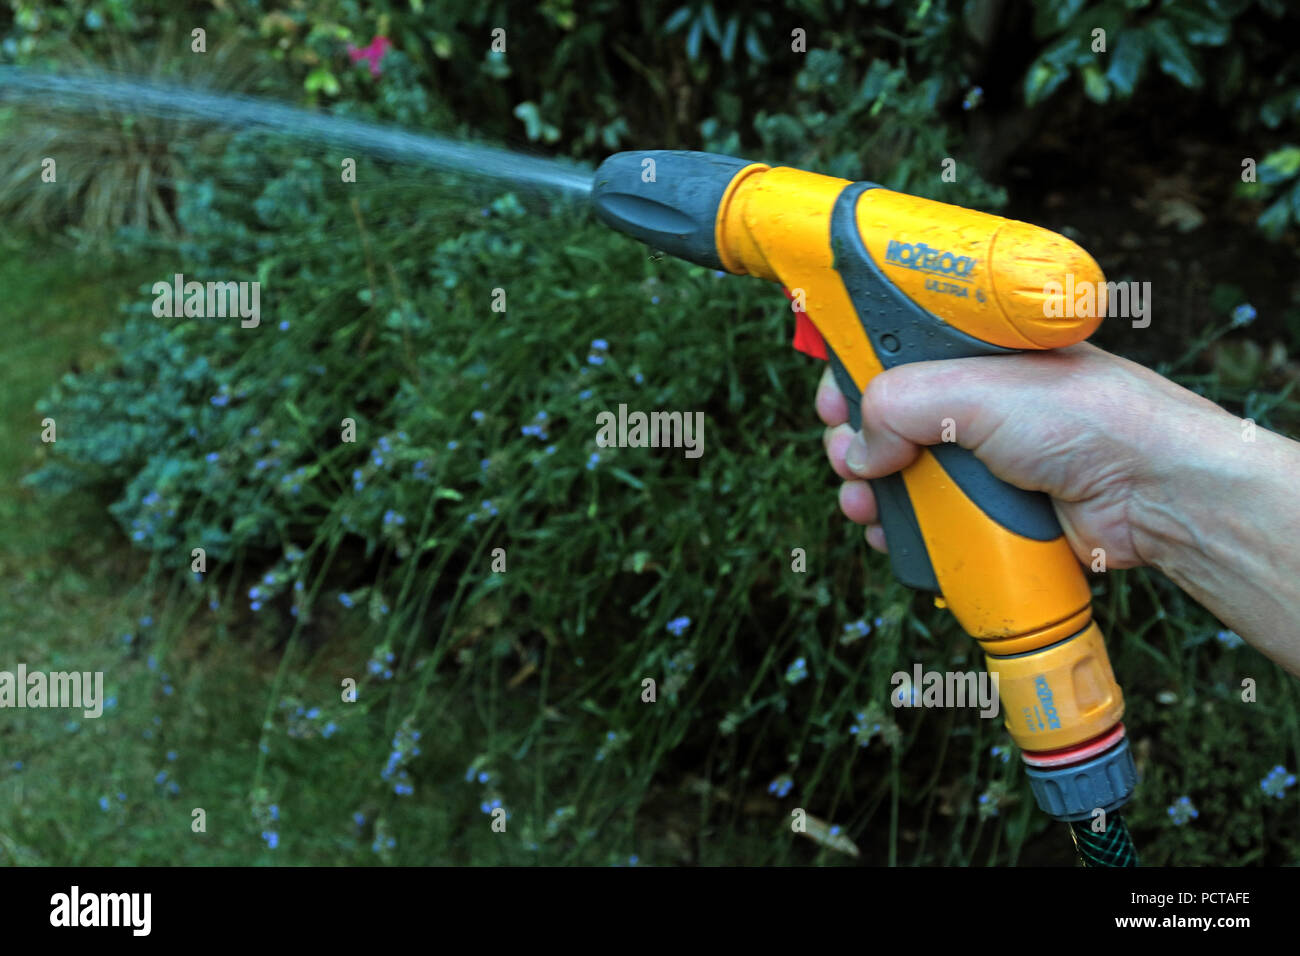 GoTonySmith,@HotpixUK,summer,warm,water,waste,hosepipe,pointing,spray,spraying,hosepipe hose,Woman,resident,garden,summertime,squeeze,squeezing,squeezing trigger,squirting,squirting water,yellow,water company,United Utilities,Privatised Water,Privatised Water Company,Water Company,person using hosepipe,person using a hosepipe,hand,arm,fingers,gardening,hedge,shrub,shower,wet,wetting,outdoors,watering